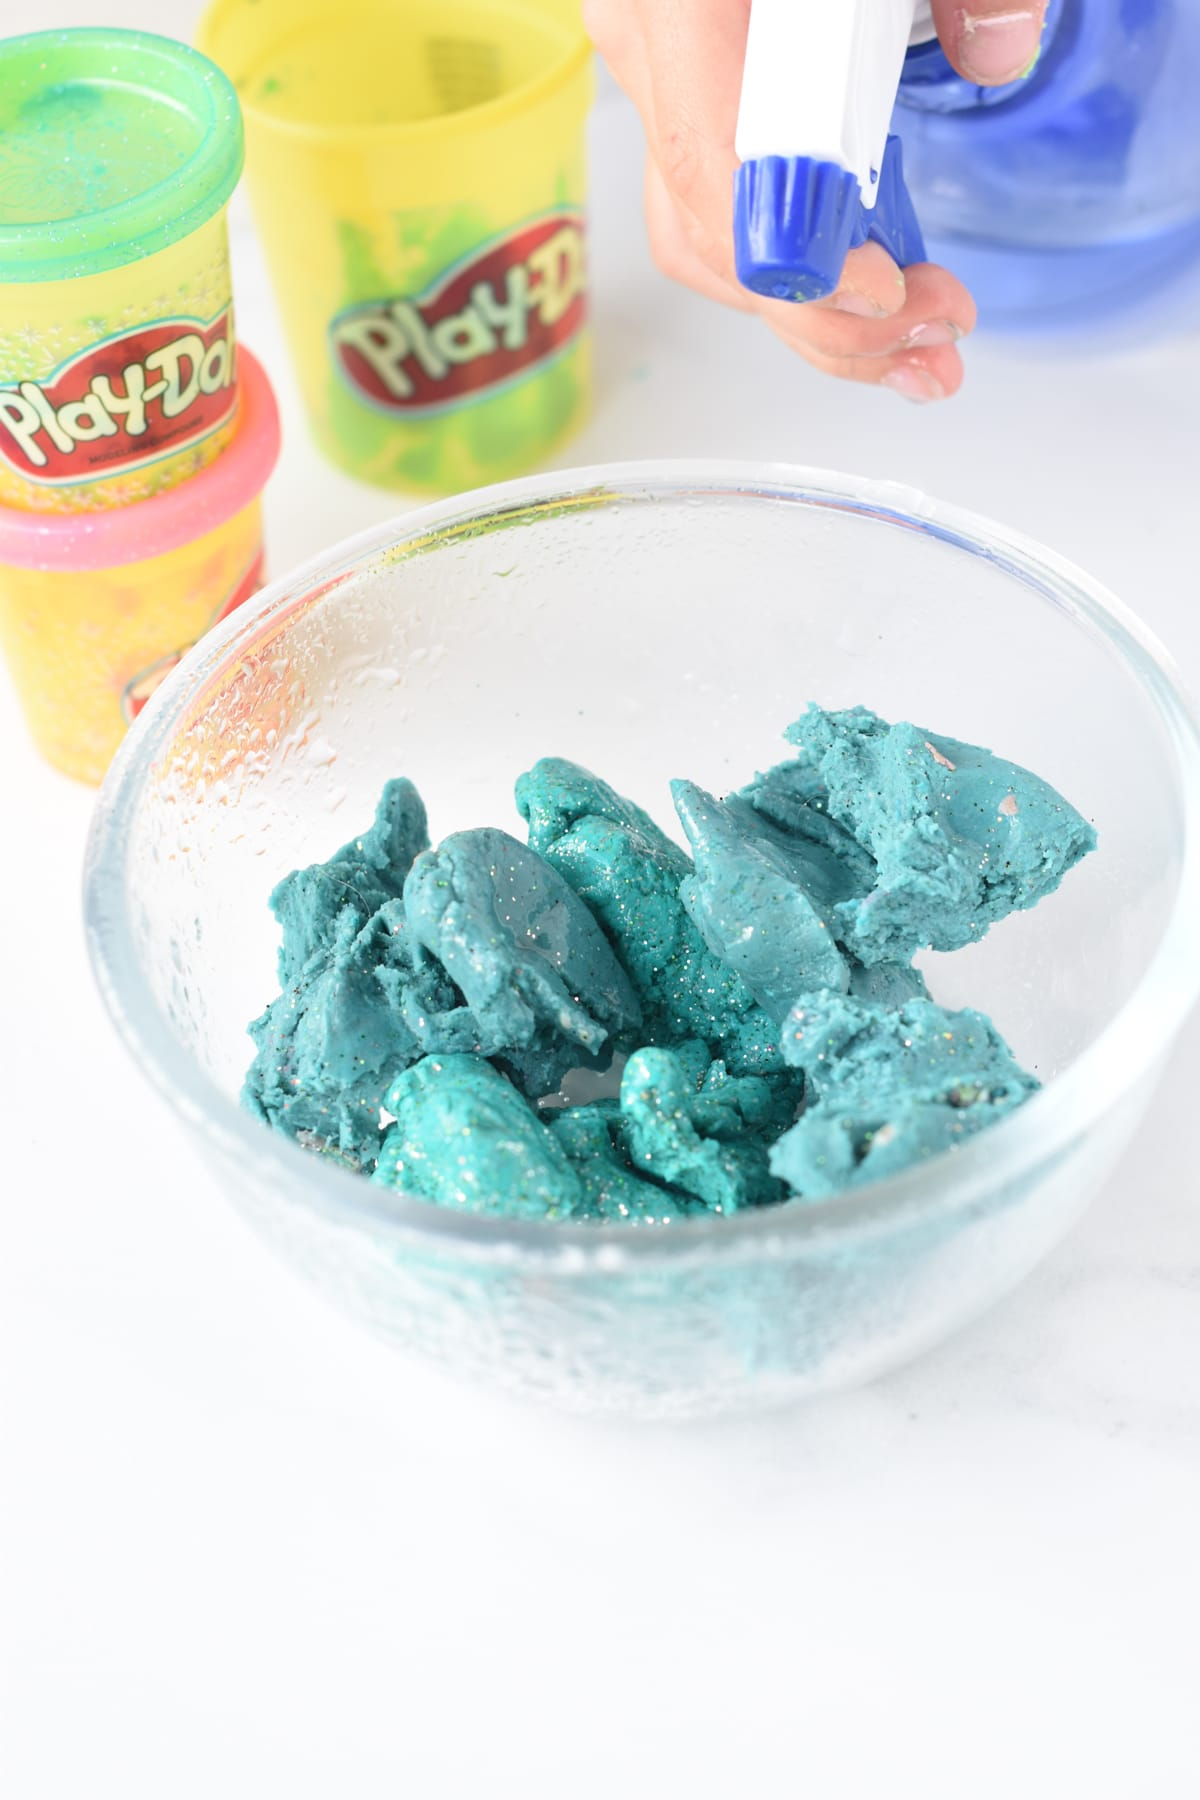 How to fix old playdough